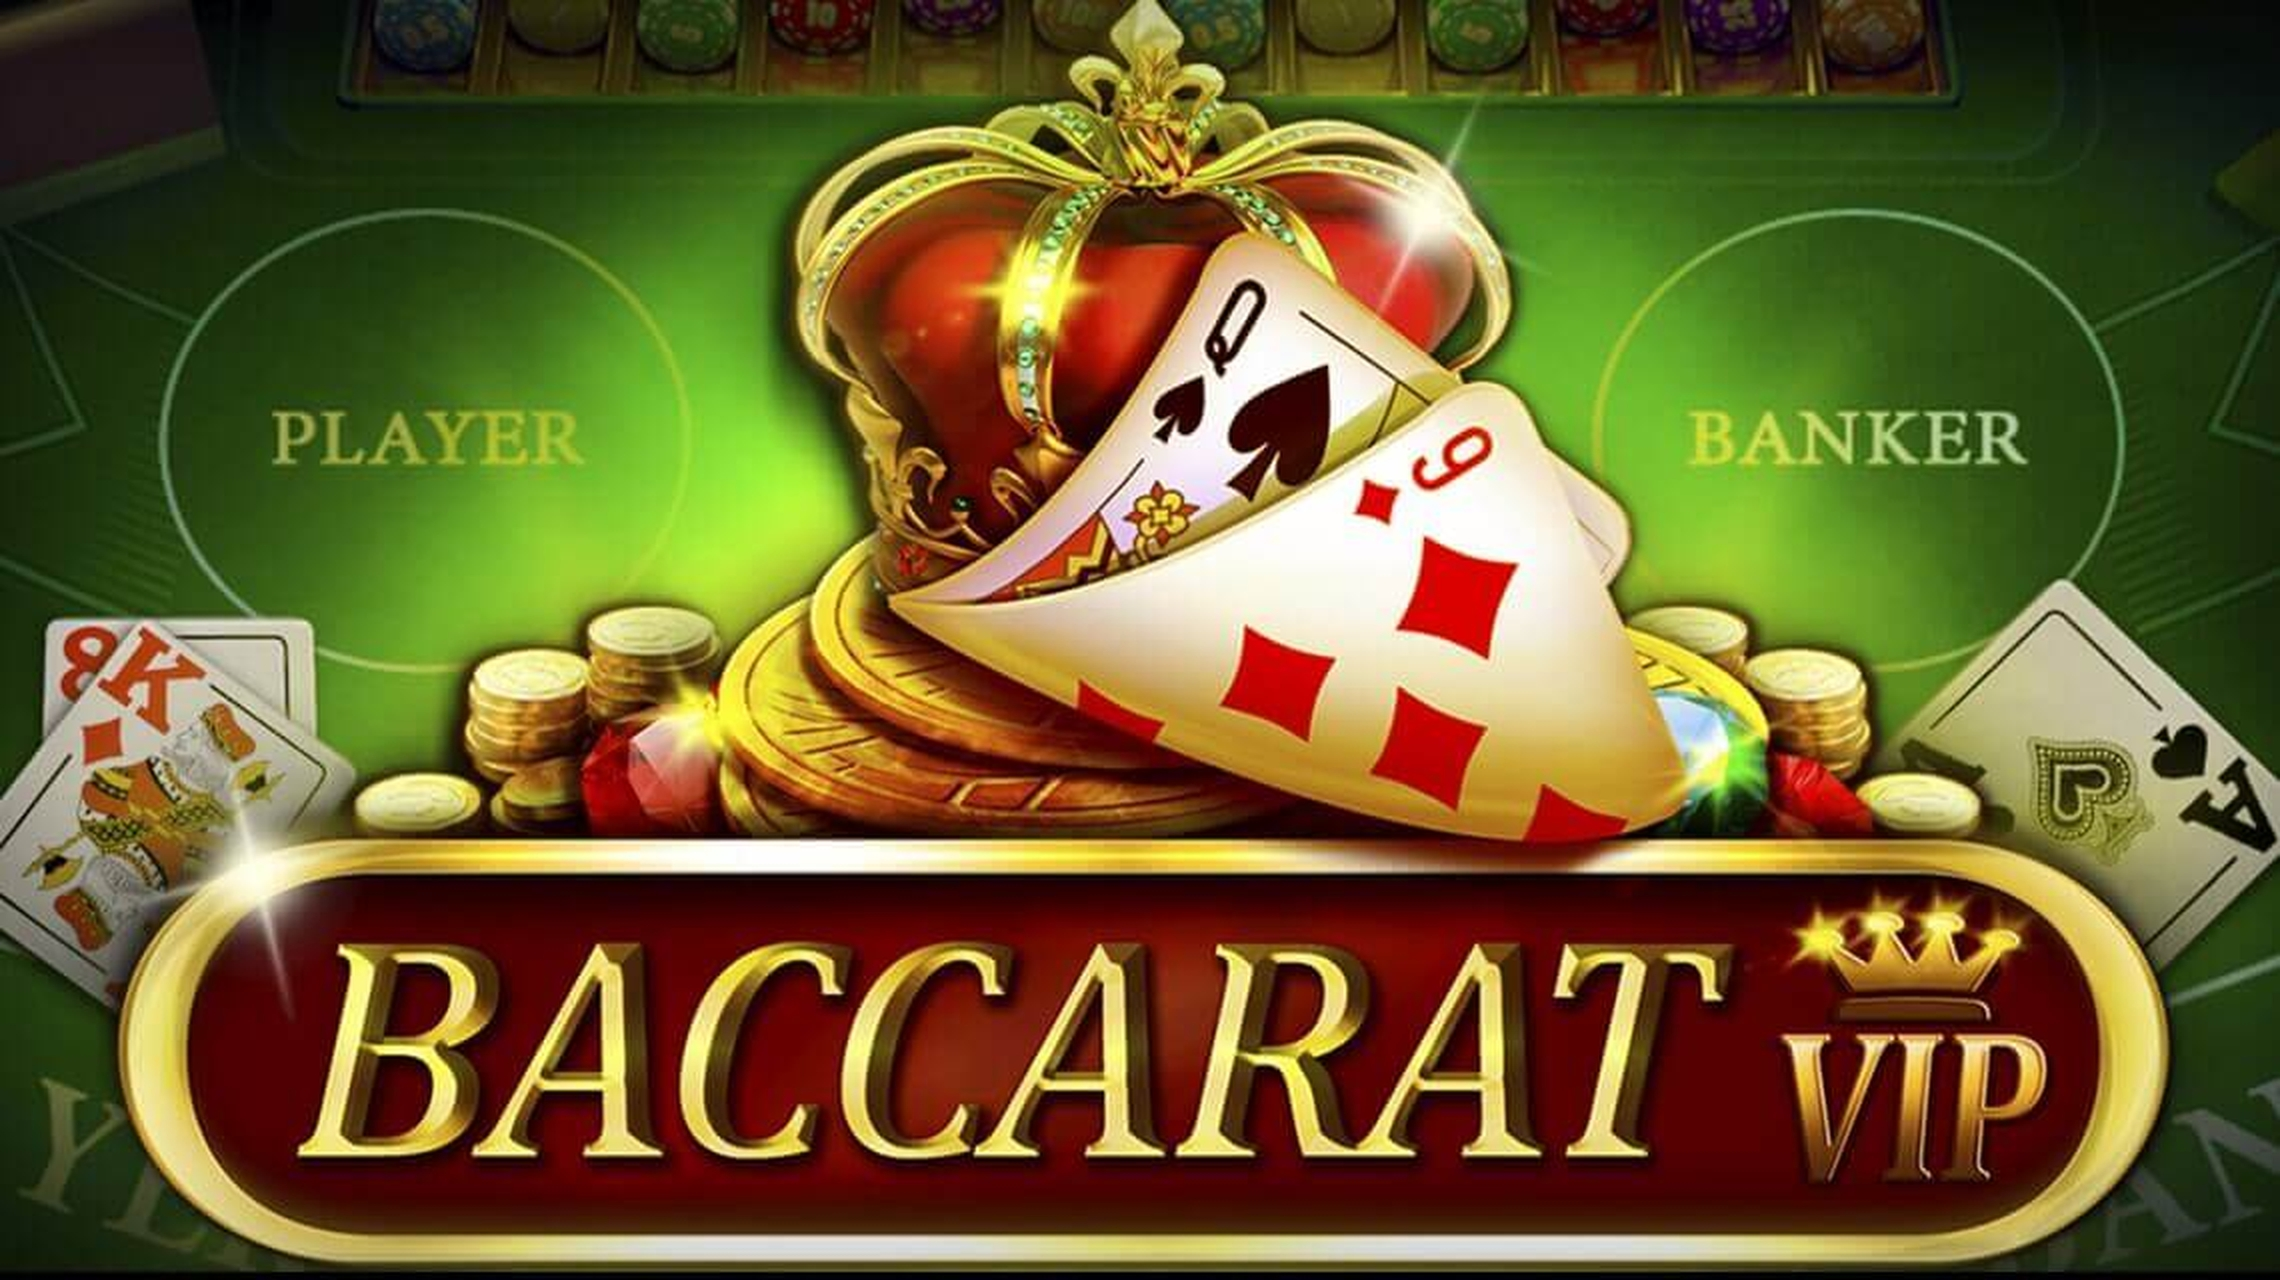 The Baccarat (BGaming) Online Slot Demo Game by BGAMING